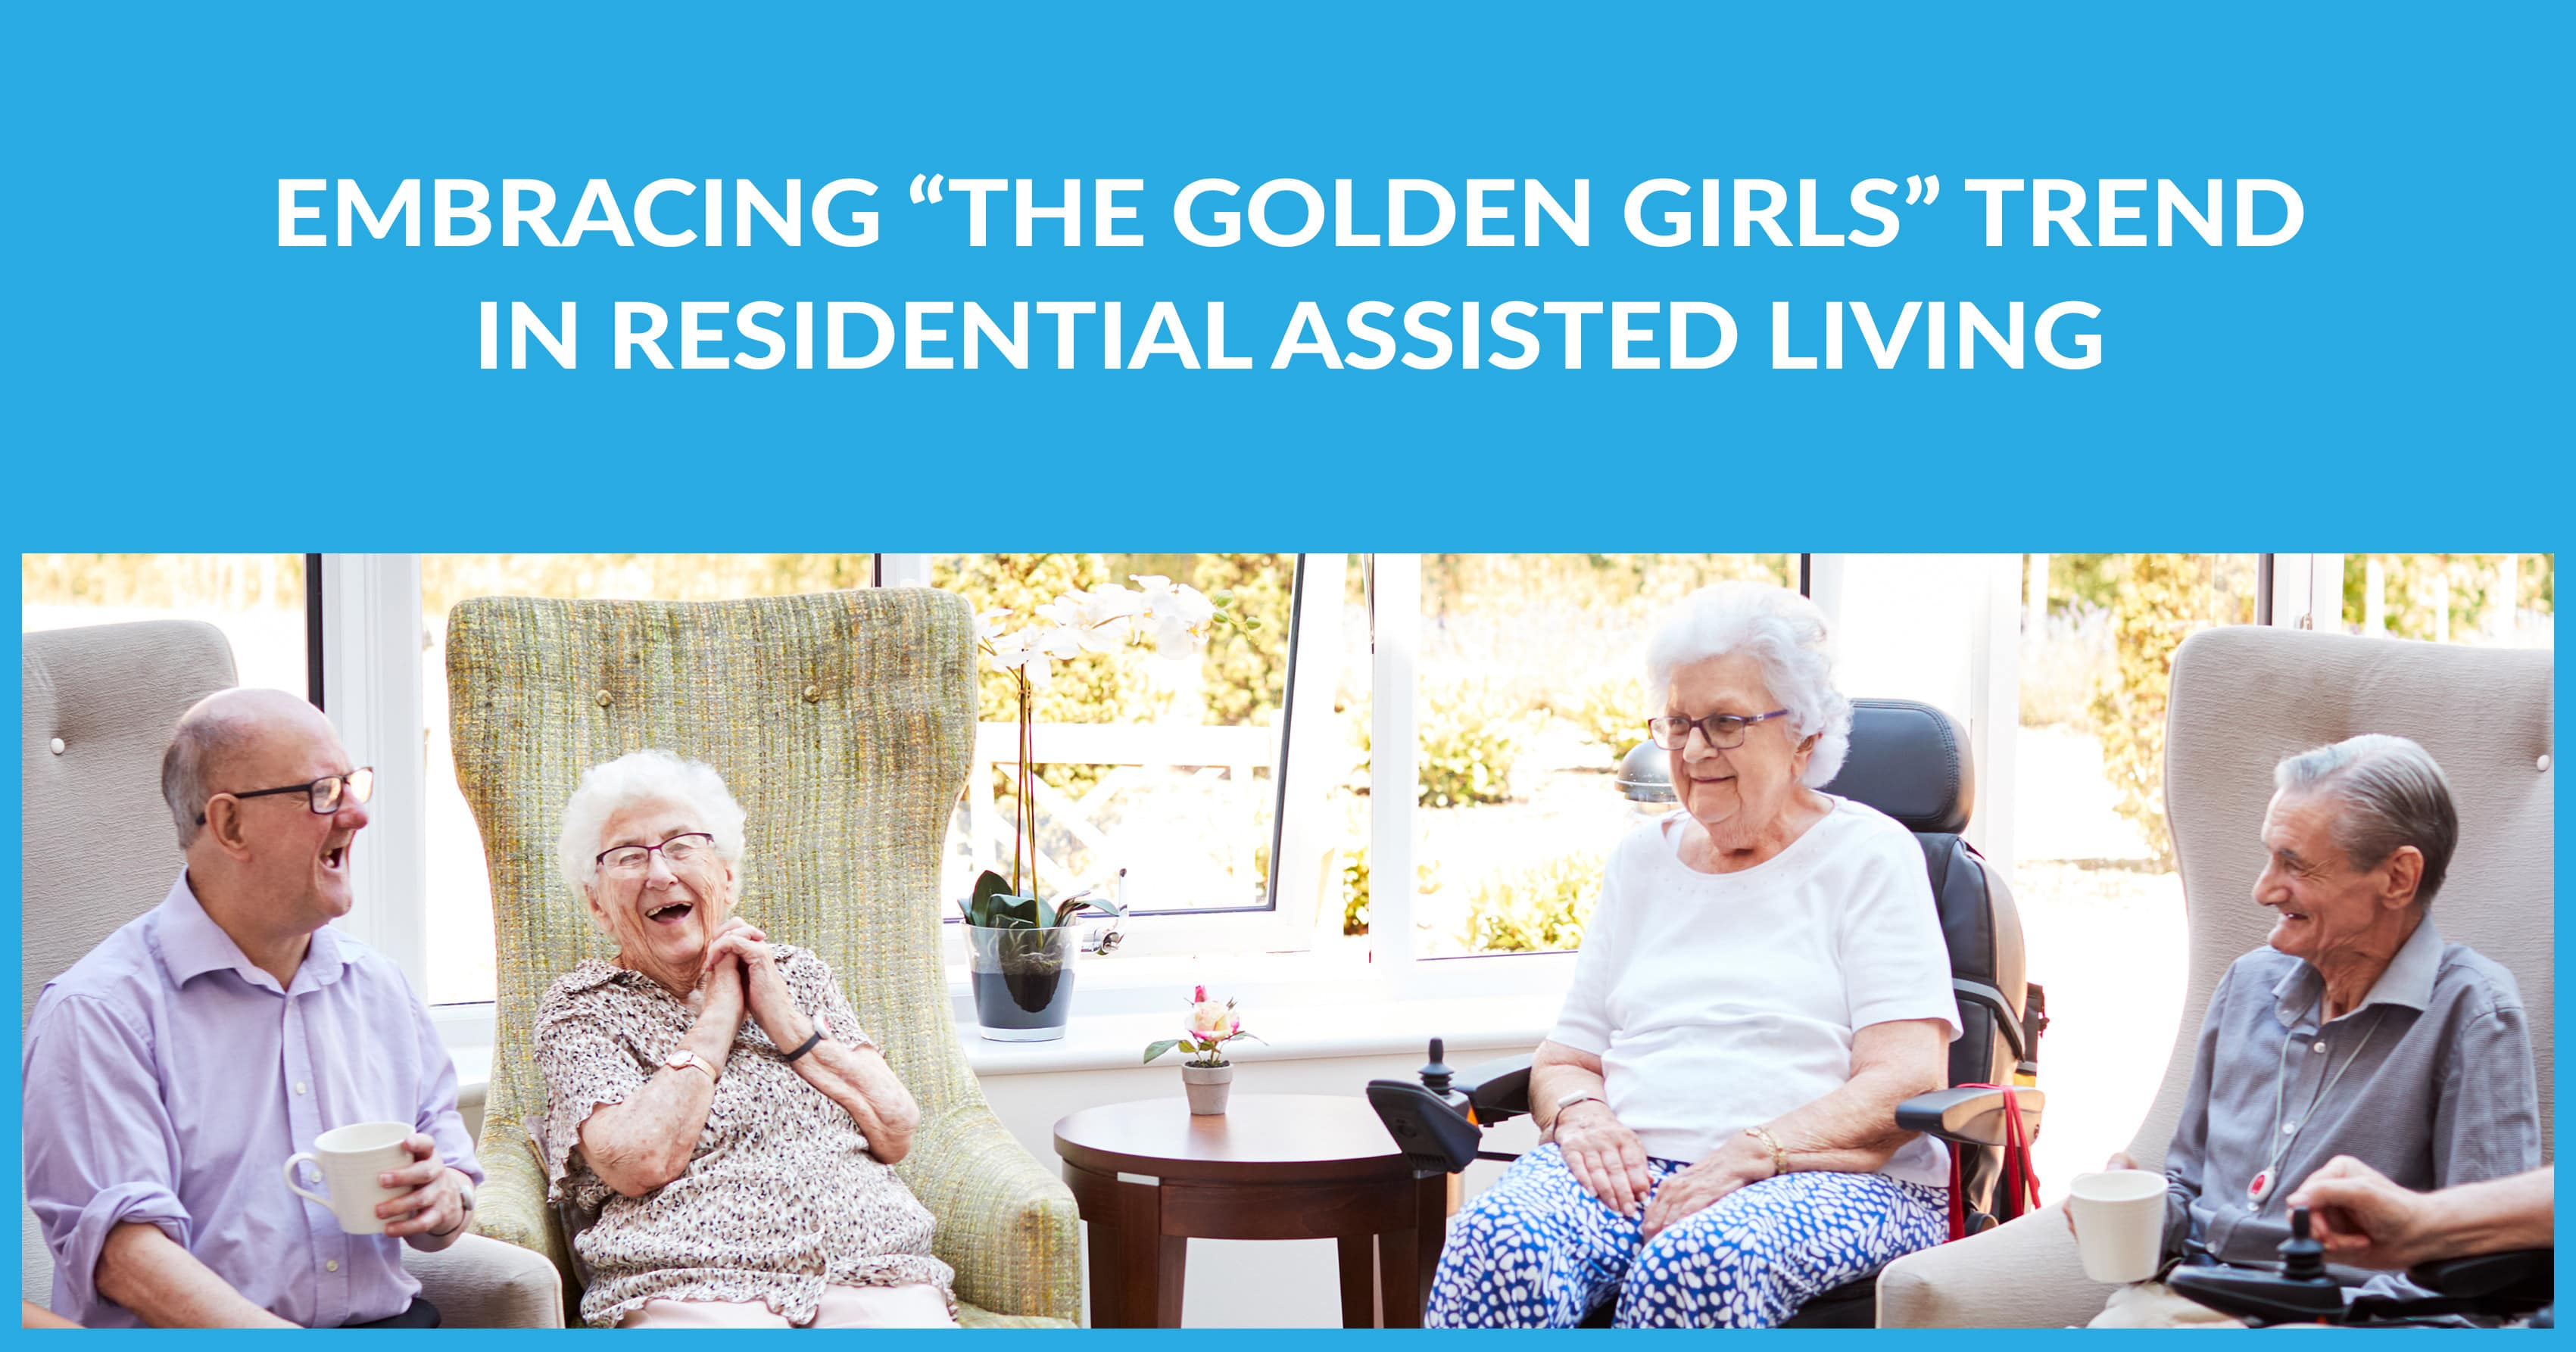 Golden Girls Blog Image